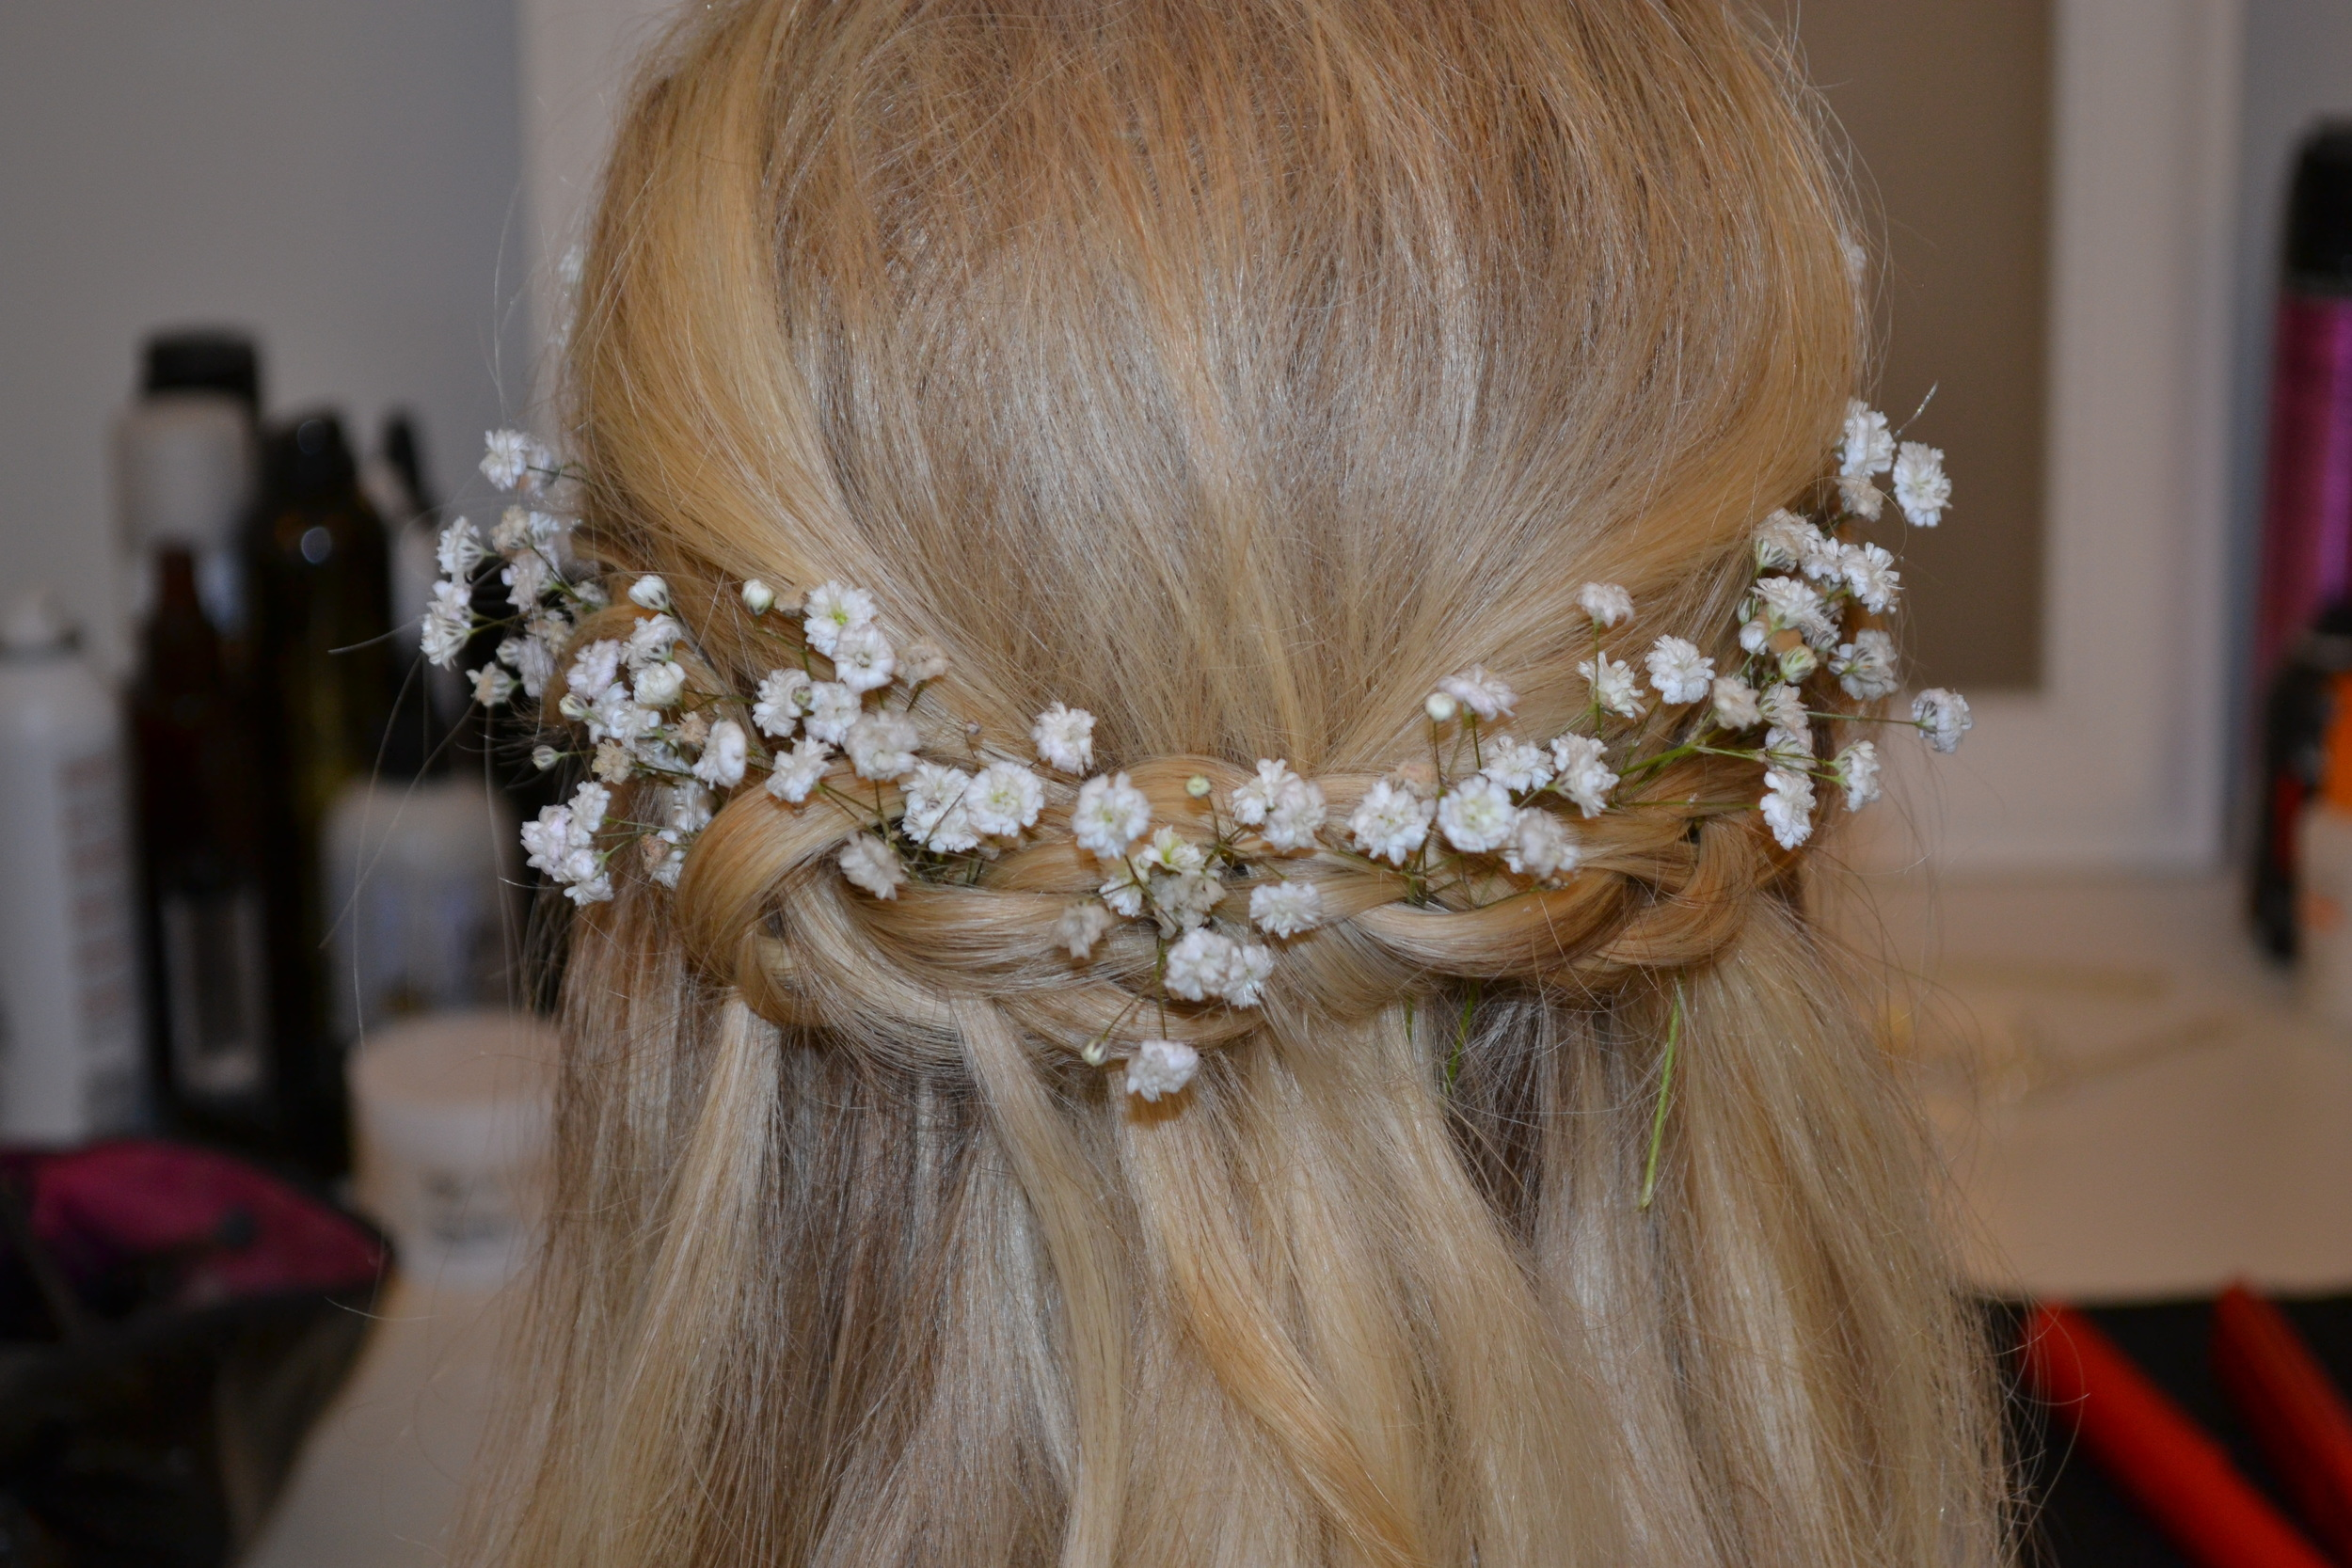 Here Jo Irving has added Gypsophila to create a soft boho look with plaits. This picture was taken at the studio during a hair up course